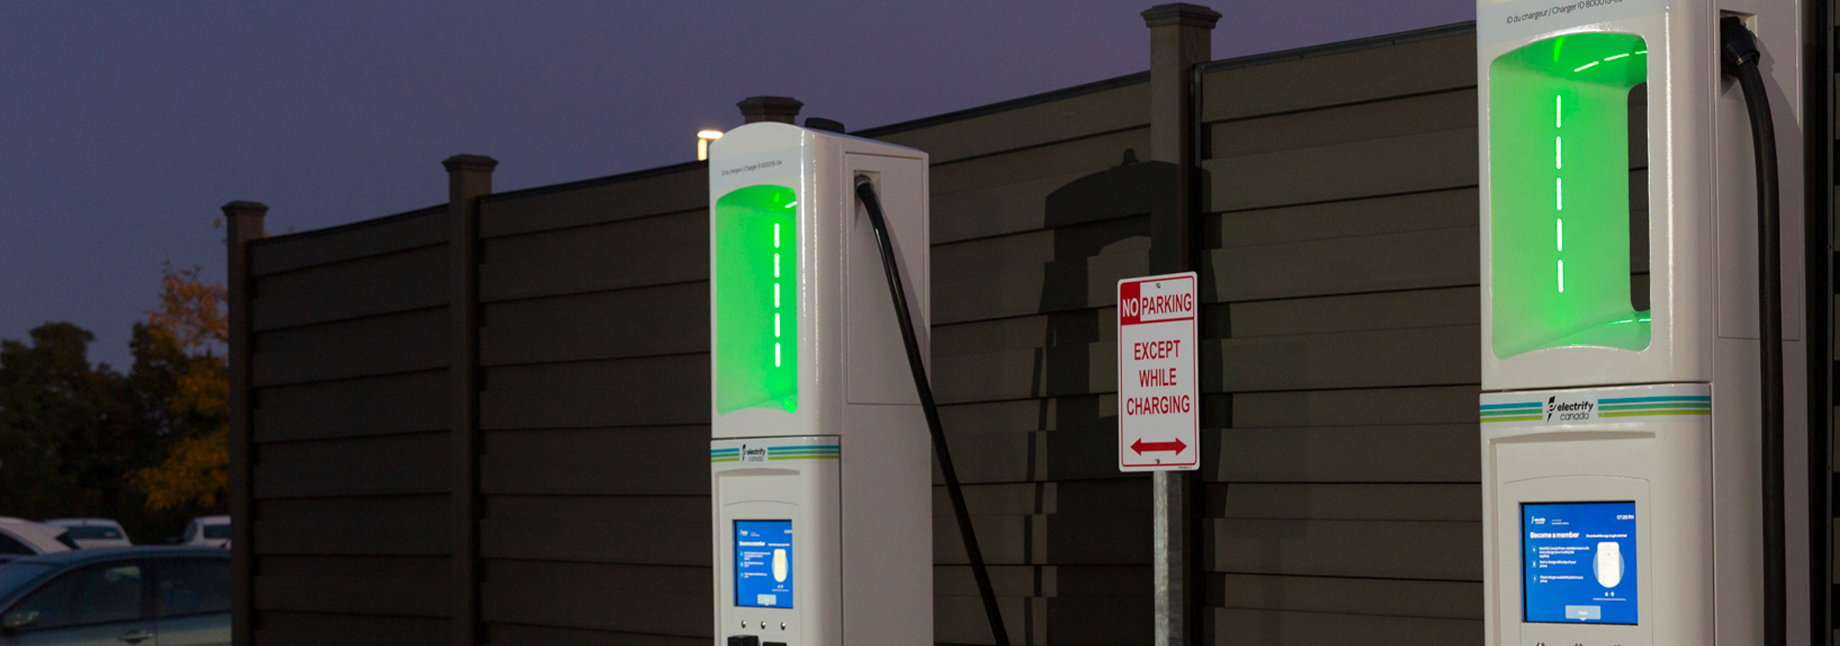 Two Electrify America charging stations glowing green at night